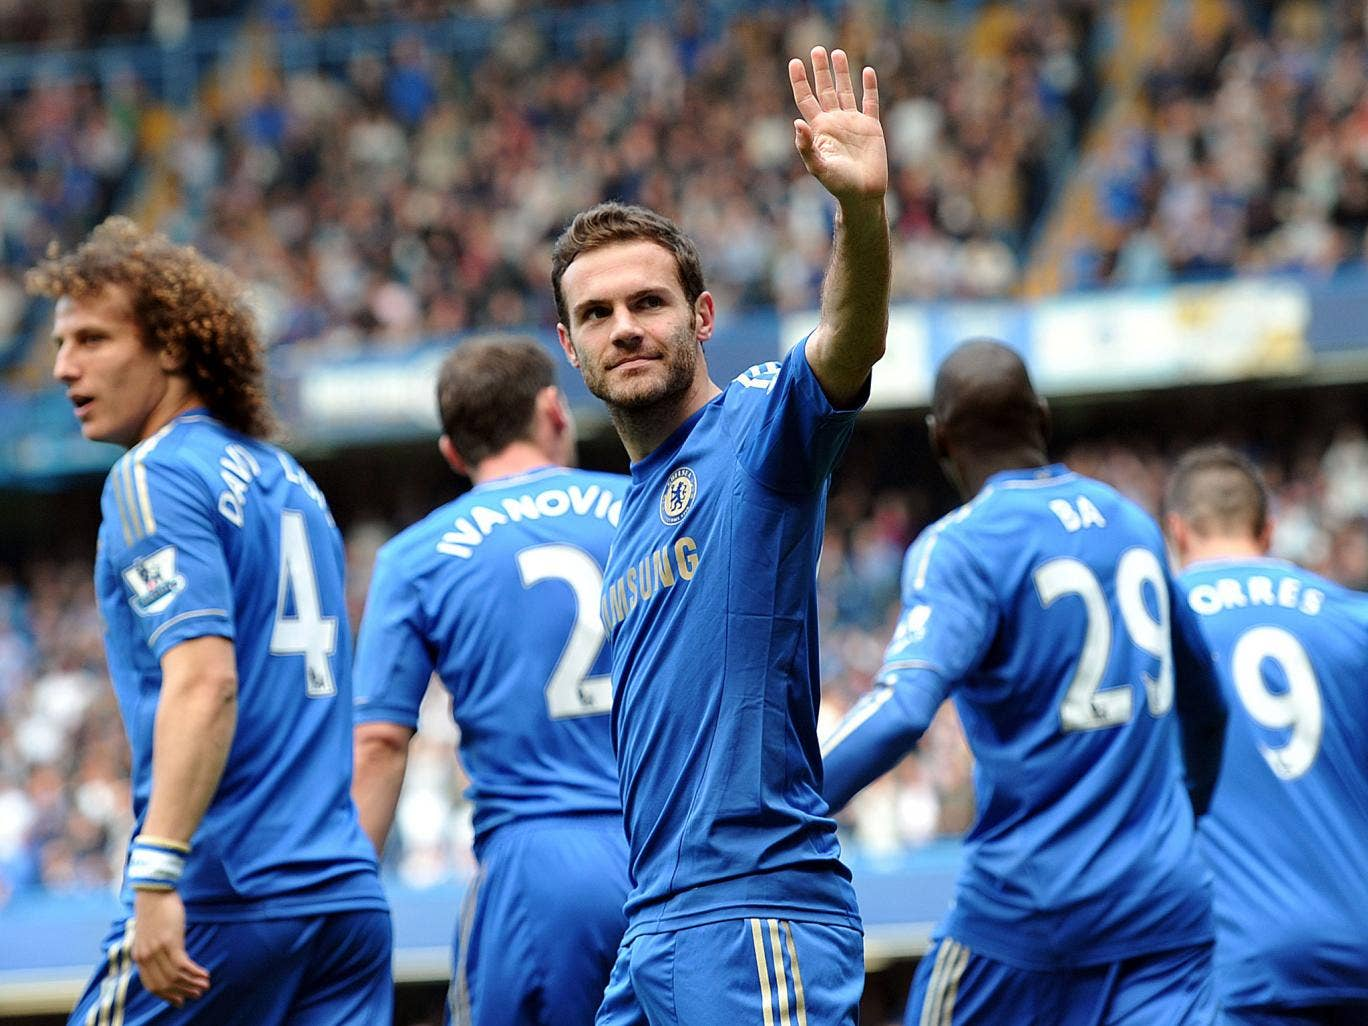 Juan Mata says goodbye to Chelsea as a deal is finally reacher for his transfer to Manchester United